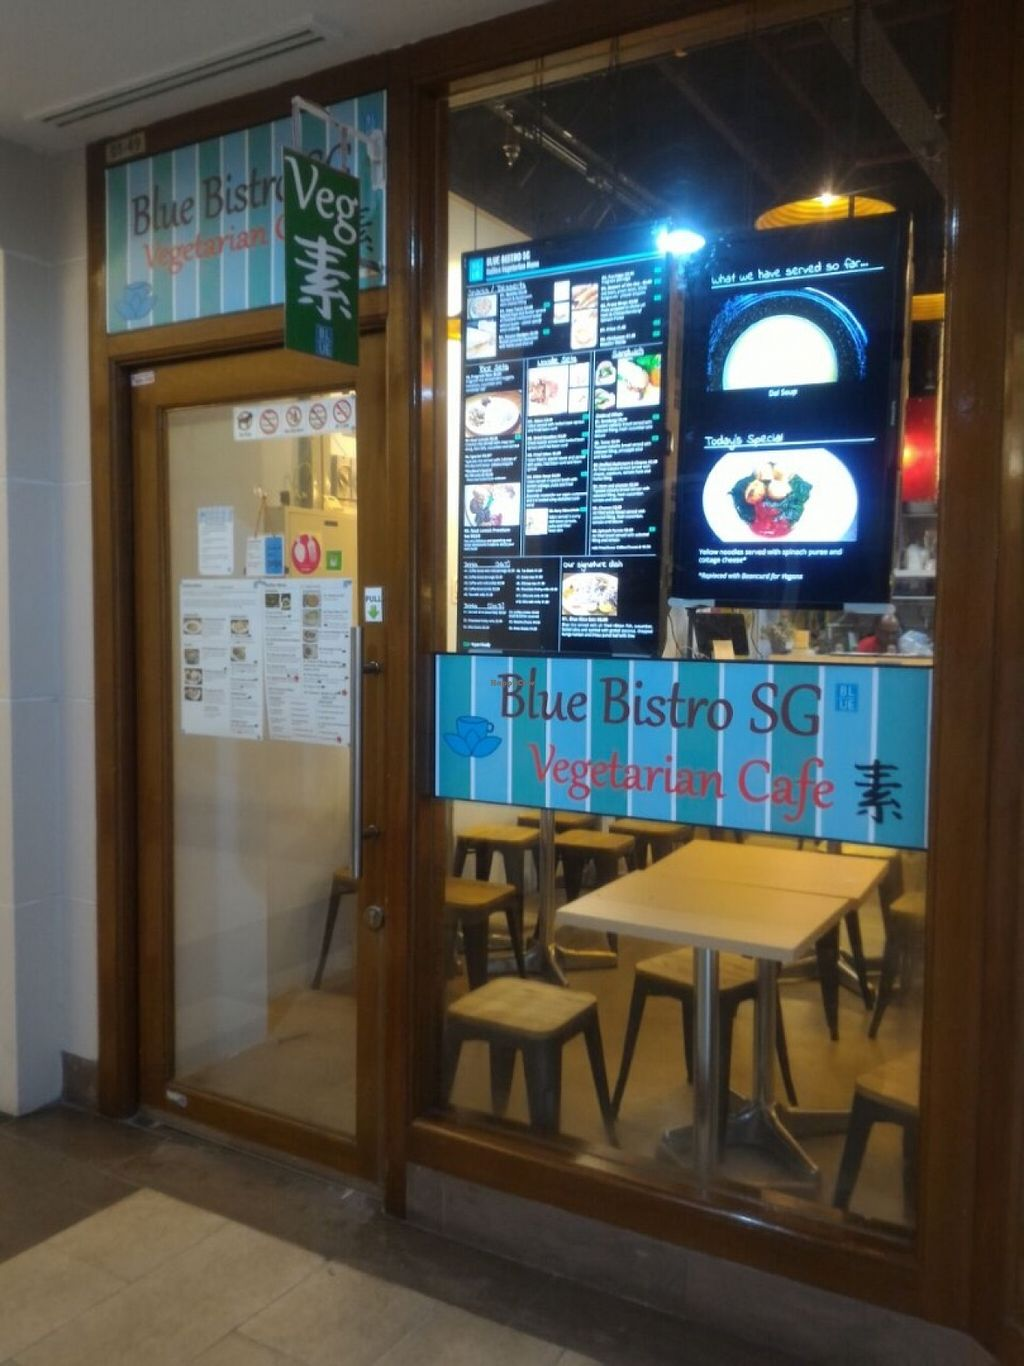 "Photo of CLOSED: Blue Bistro SG Cafe  by <a href=""/members/profile/ouikouik"">ouikouik</a> <br/>blue bistro sg cafe <br/> June 16, 2016  - <a href='/contact/abuse/image/71136/154277'>Report</a>"